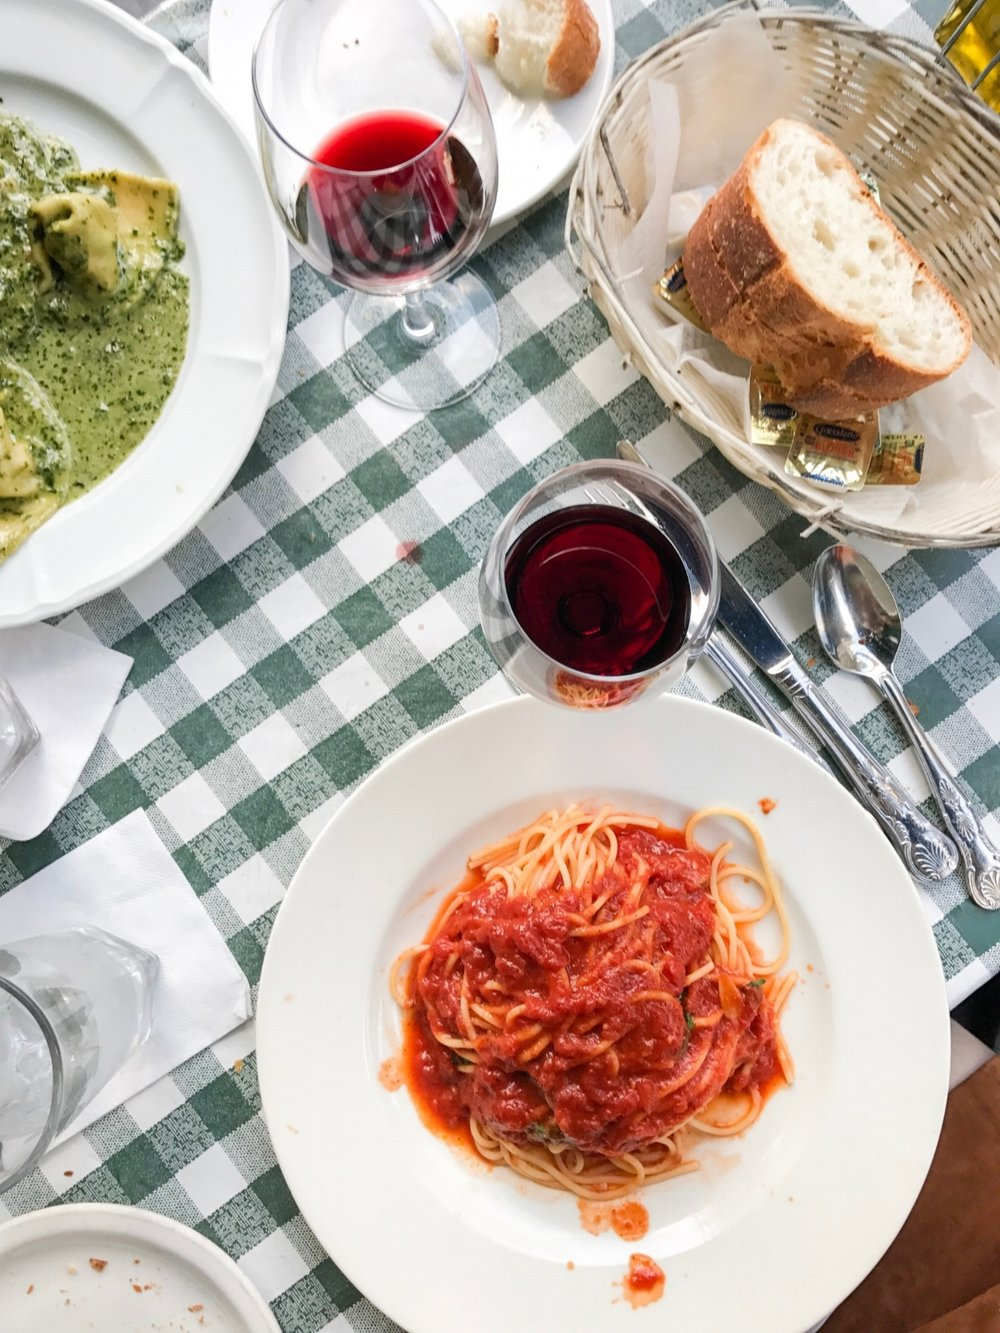 where to eat and drink in new york city, nyc, food recommendations, trattoria spagetto